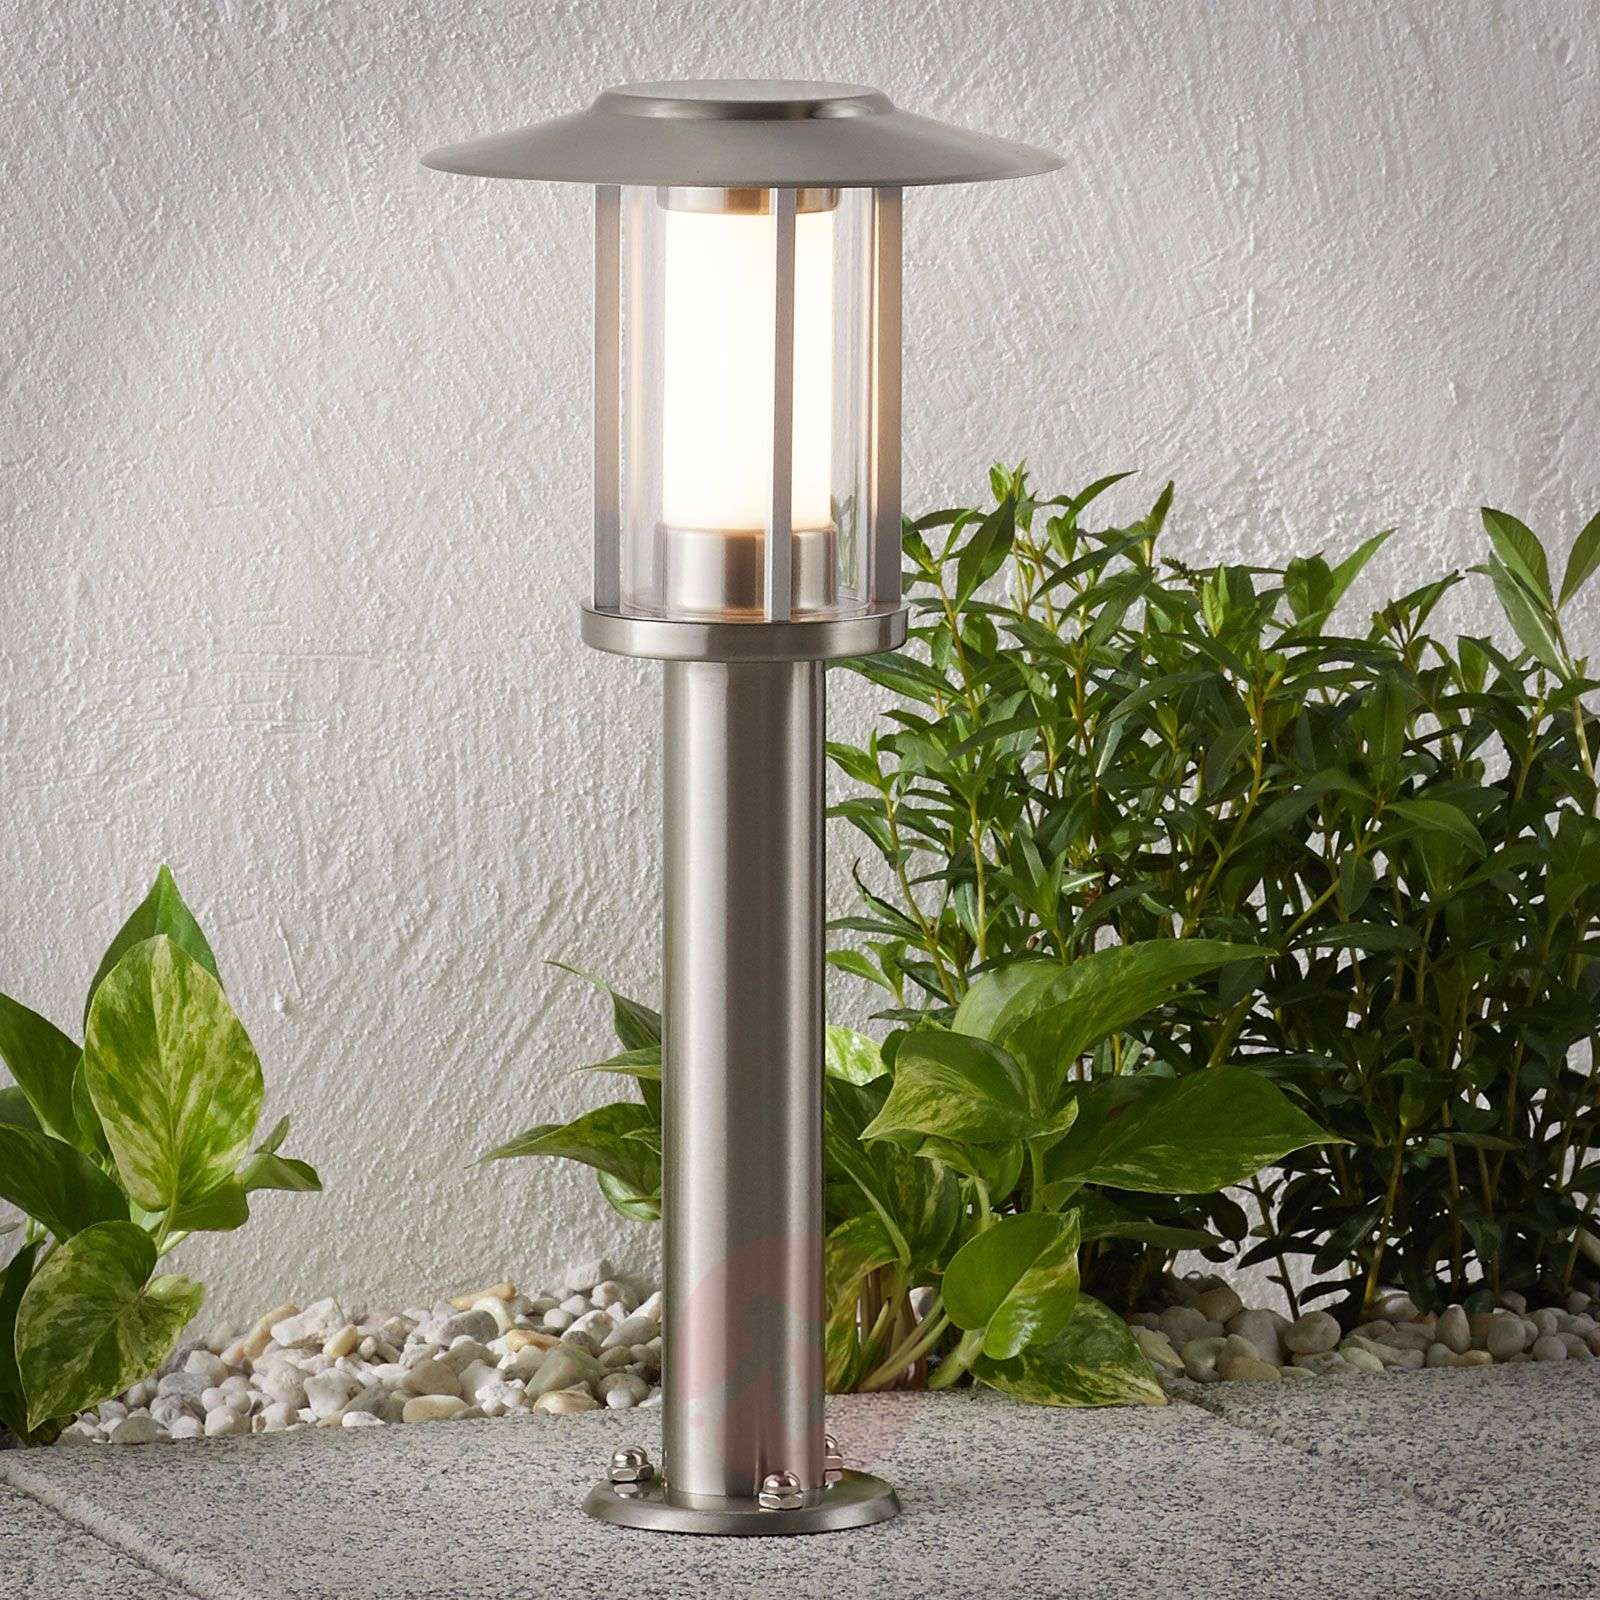 Potelet LED Gregory inox-9945316-01